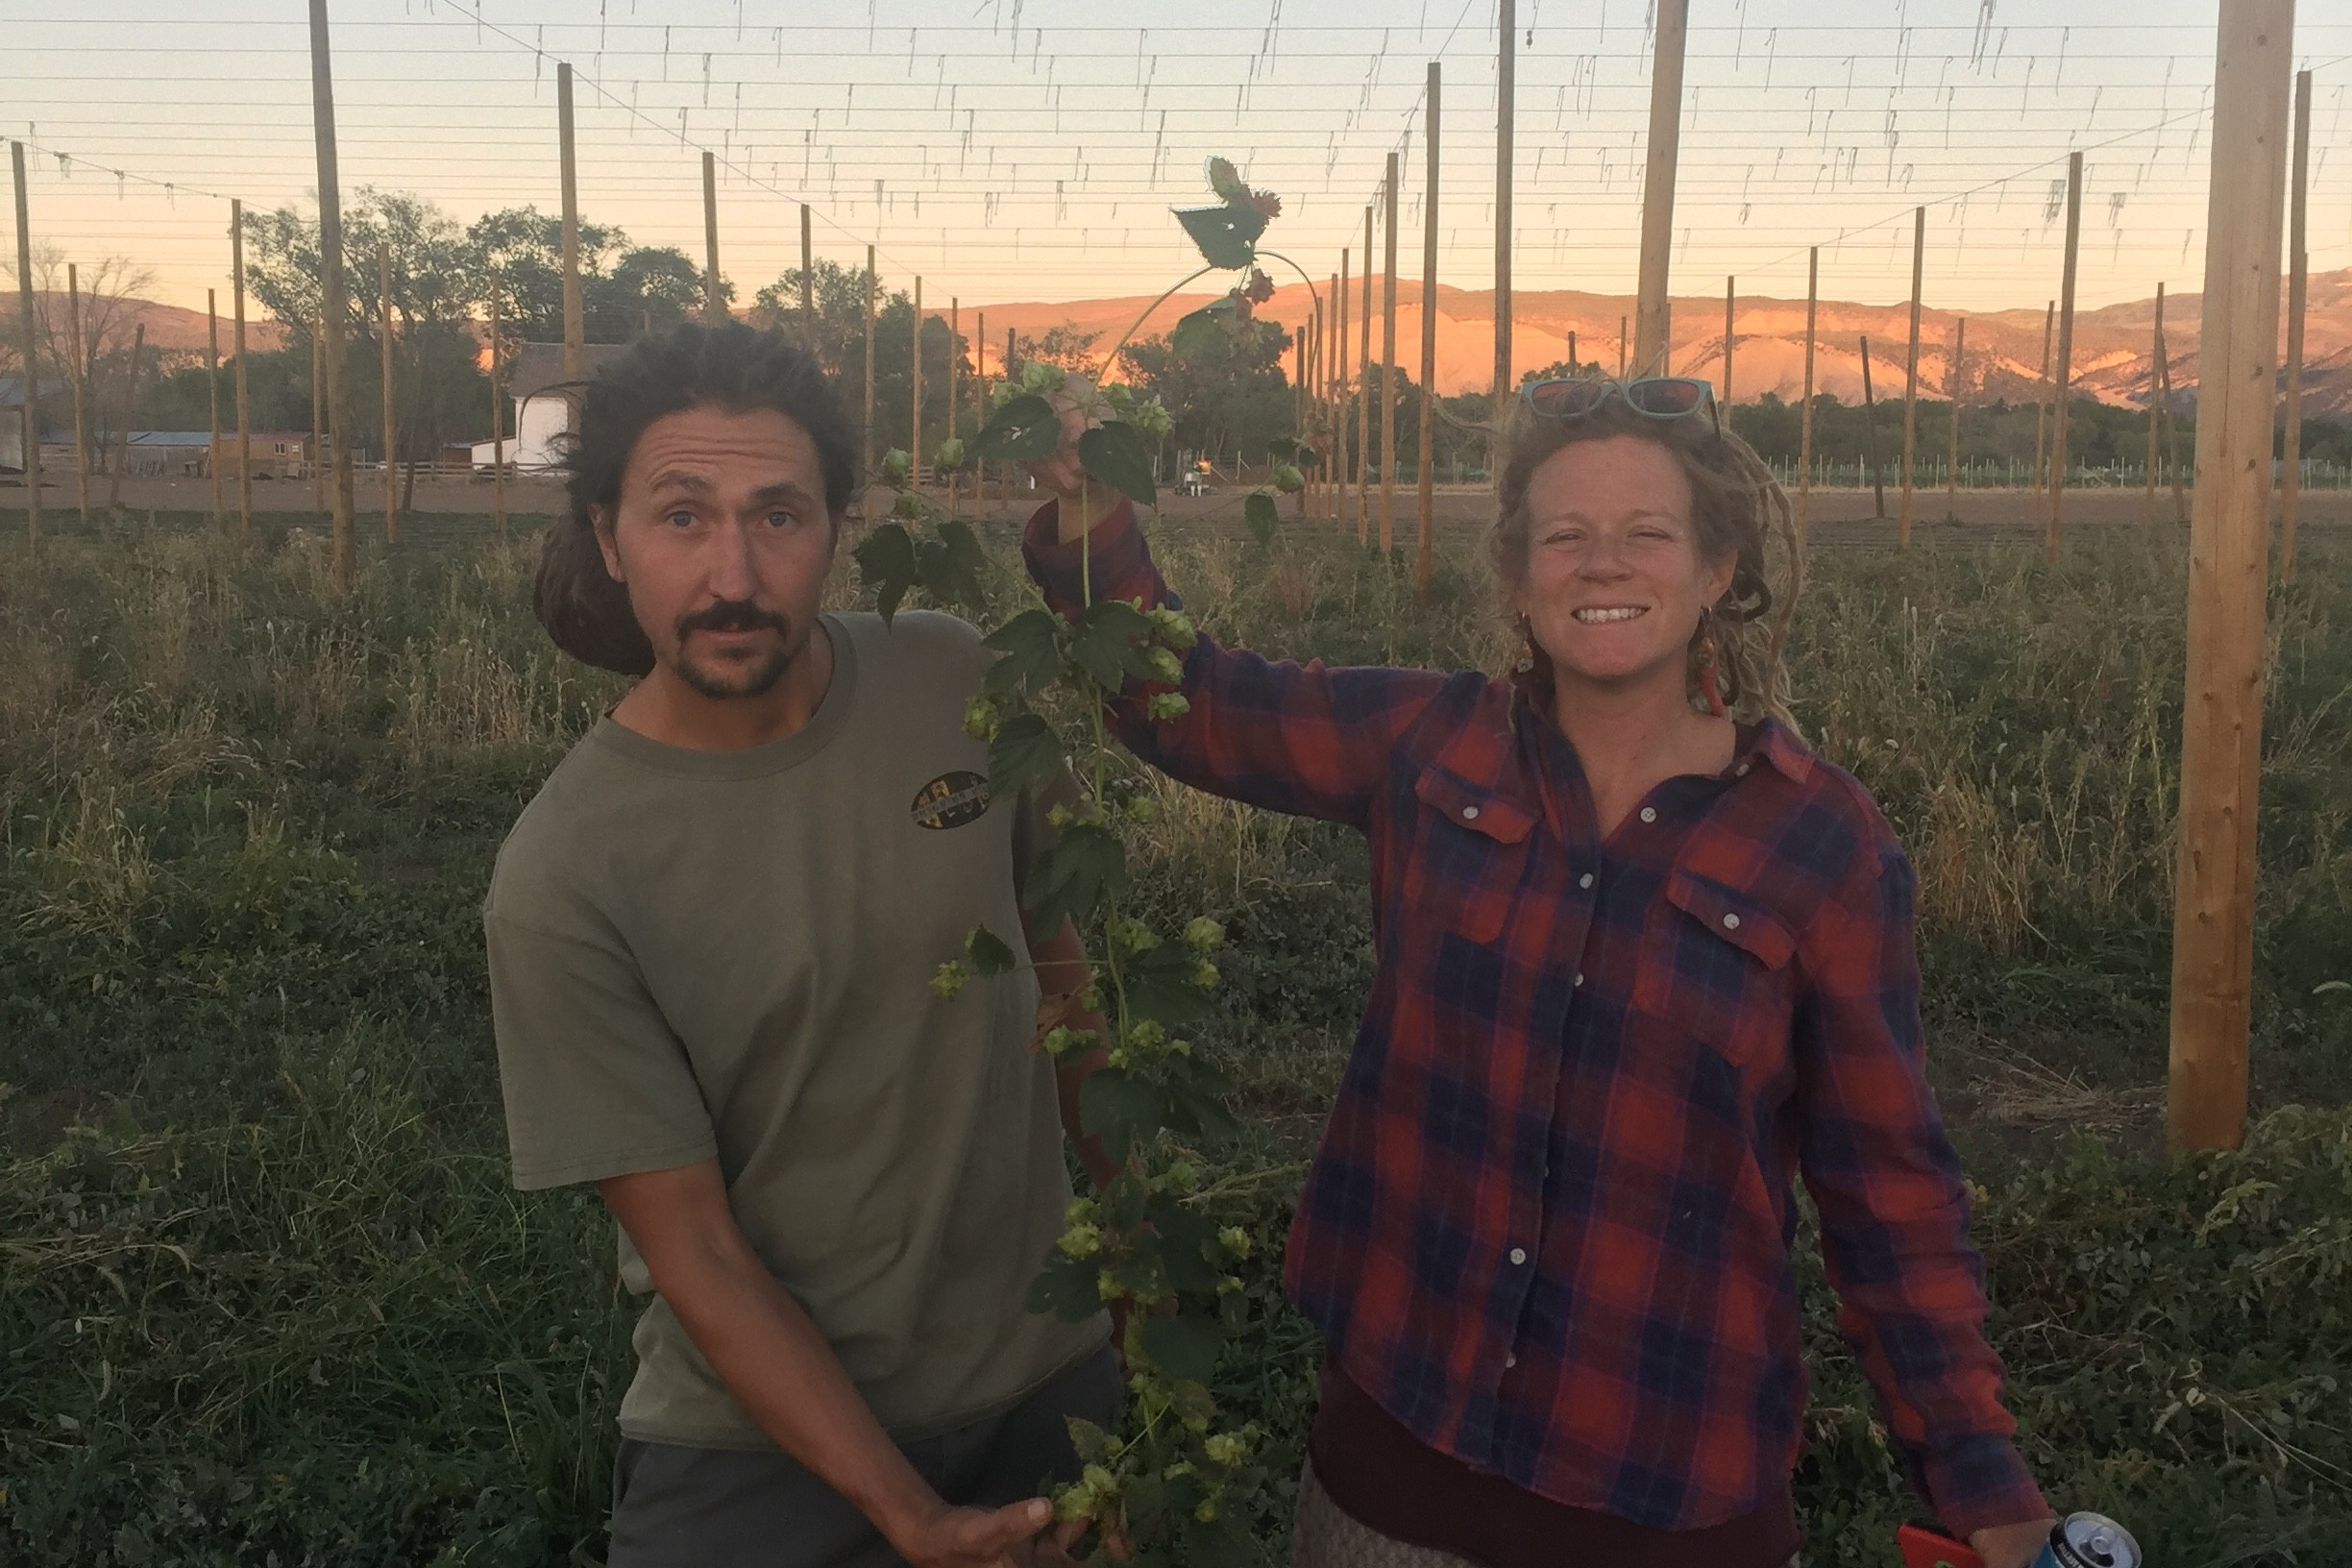 The co-owners of Billy Goat Hops Farm, Chris DellaBianca and Audrey Gehlhausen  with some of their hops plants before the coronavirus pandemic hit their sales.